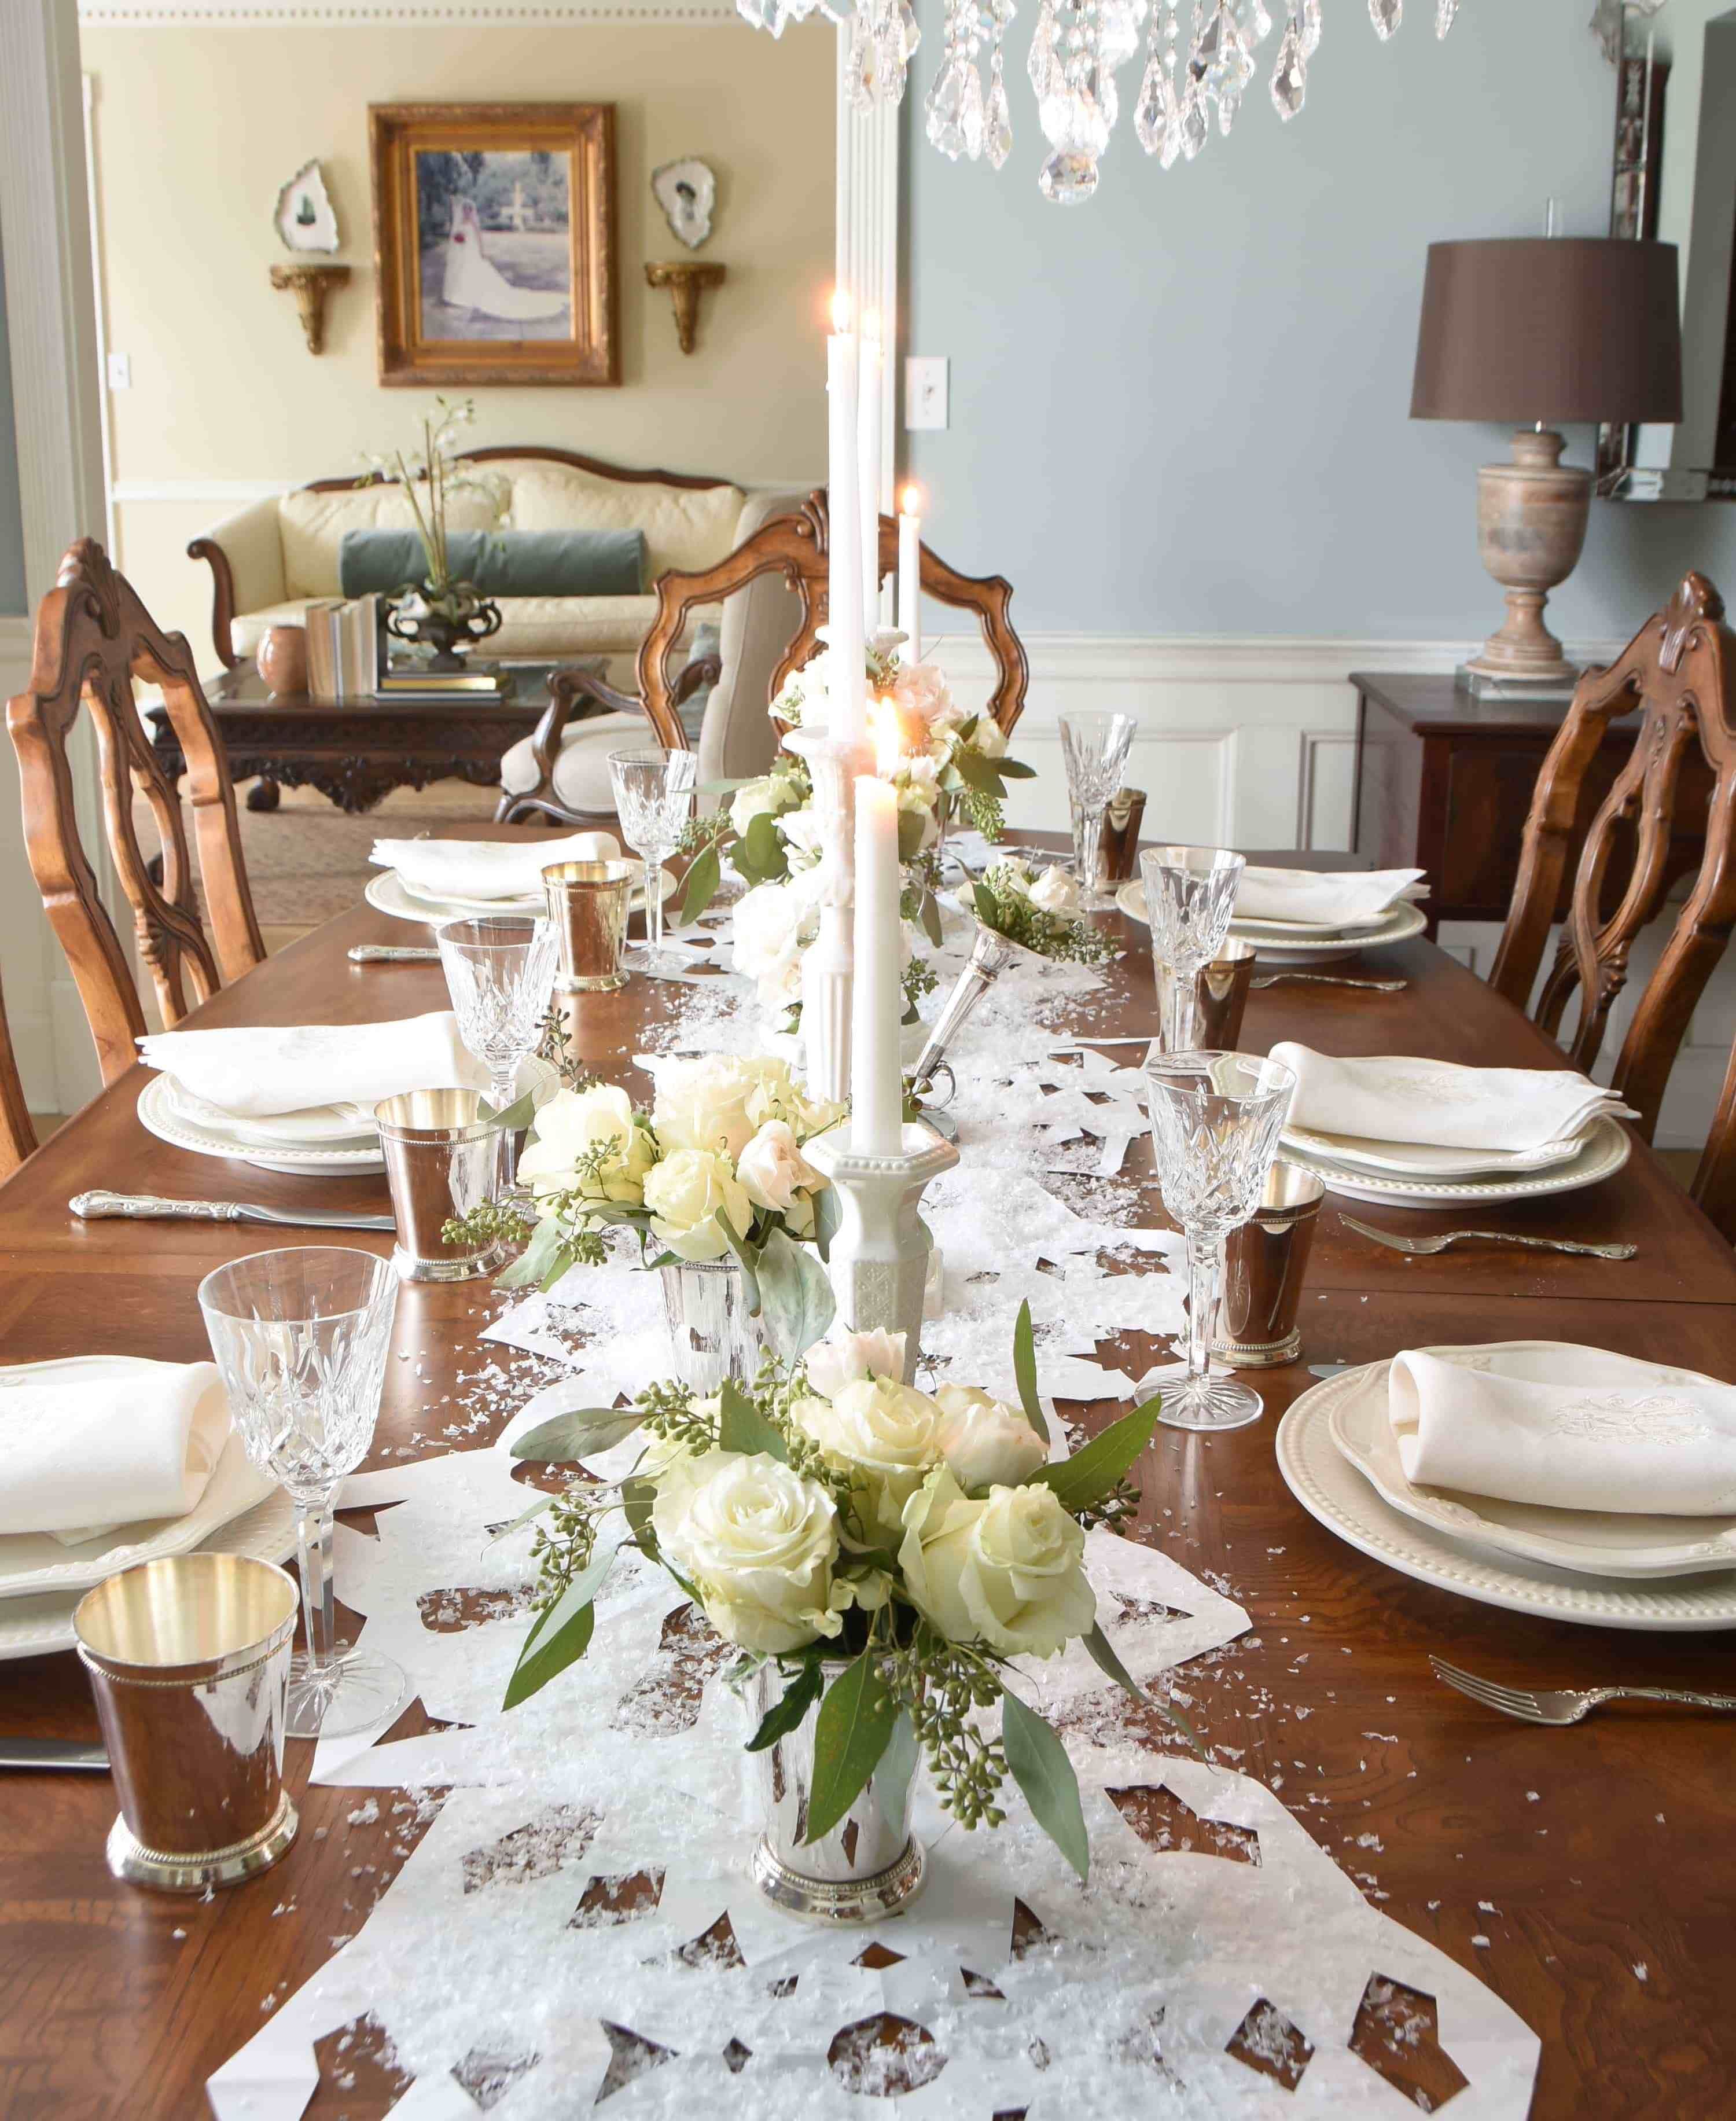 20 How To Decorate Home Interior With Faux Flowers During The Winter Formal Dining Room Table Dining Room Centerpiece Dining Room Table Decor